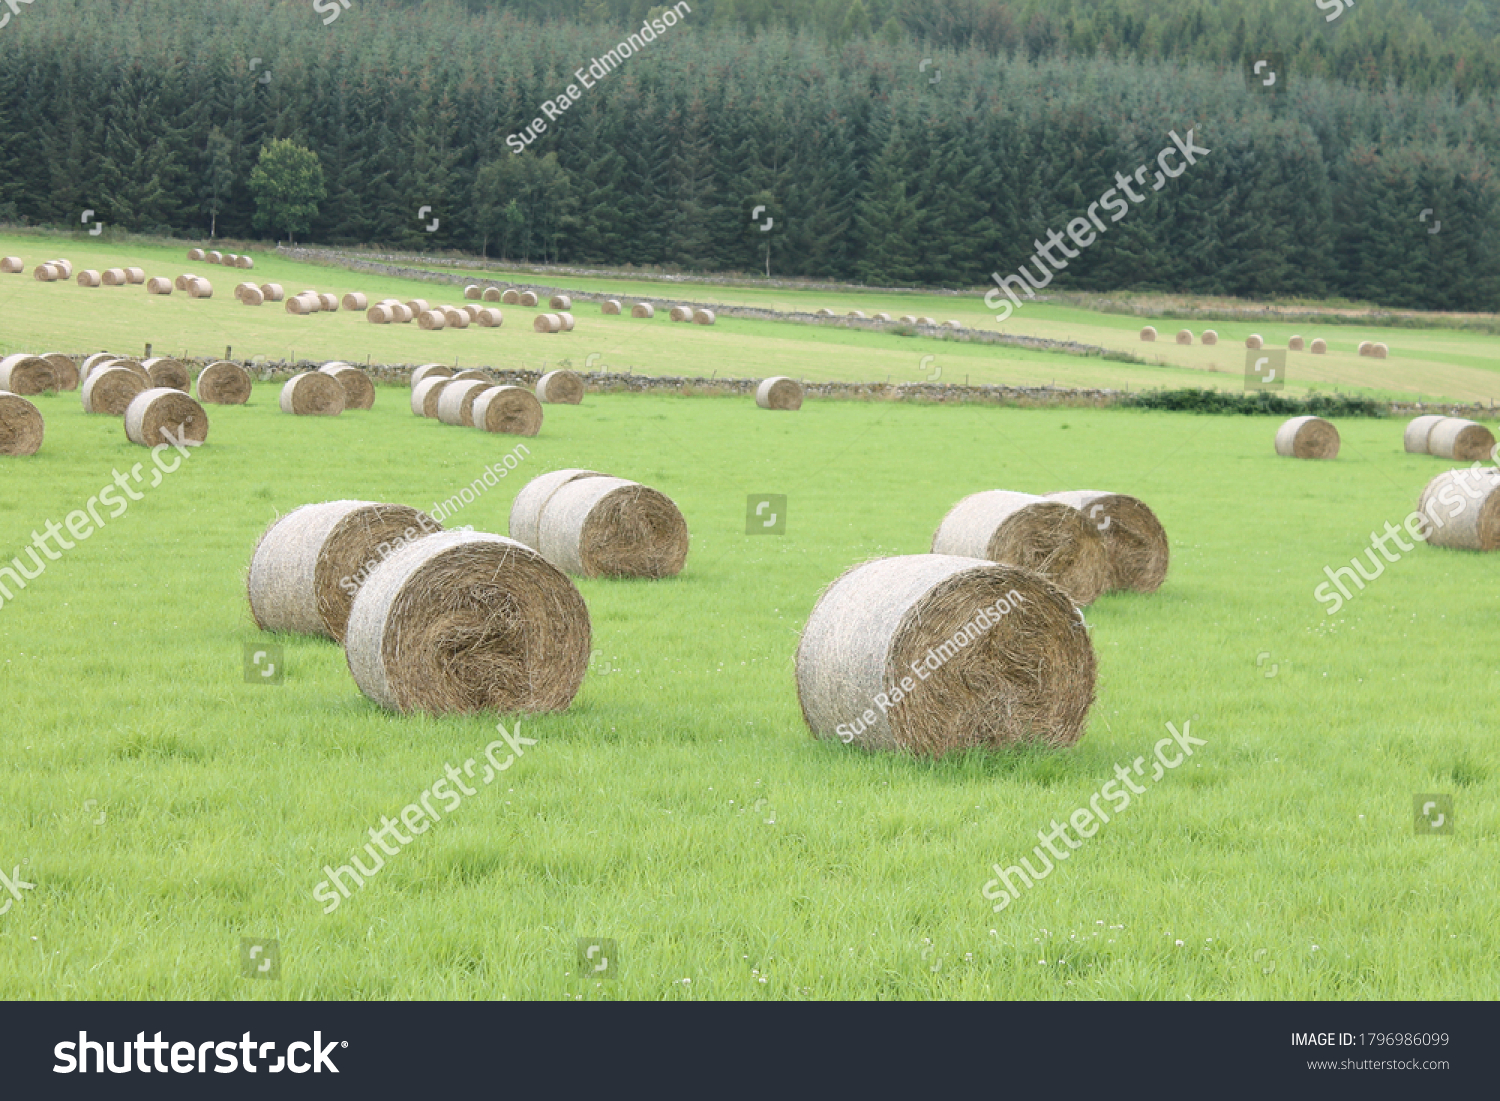 stock-photo-hay-bales-in-a-field-with-fo